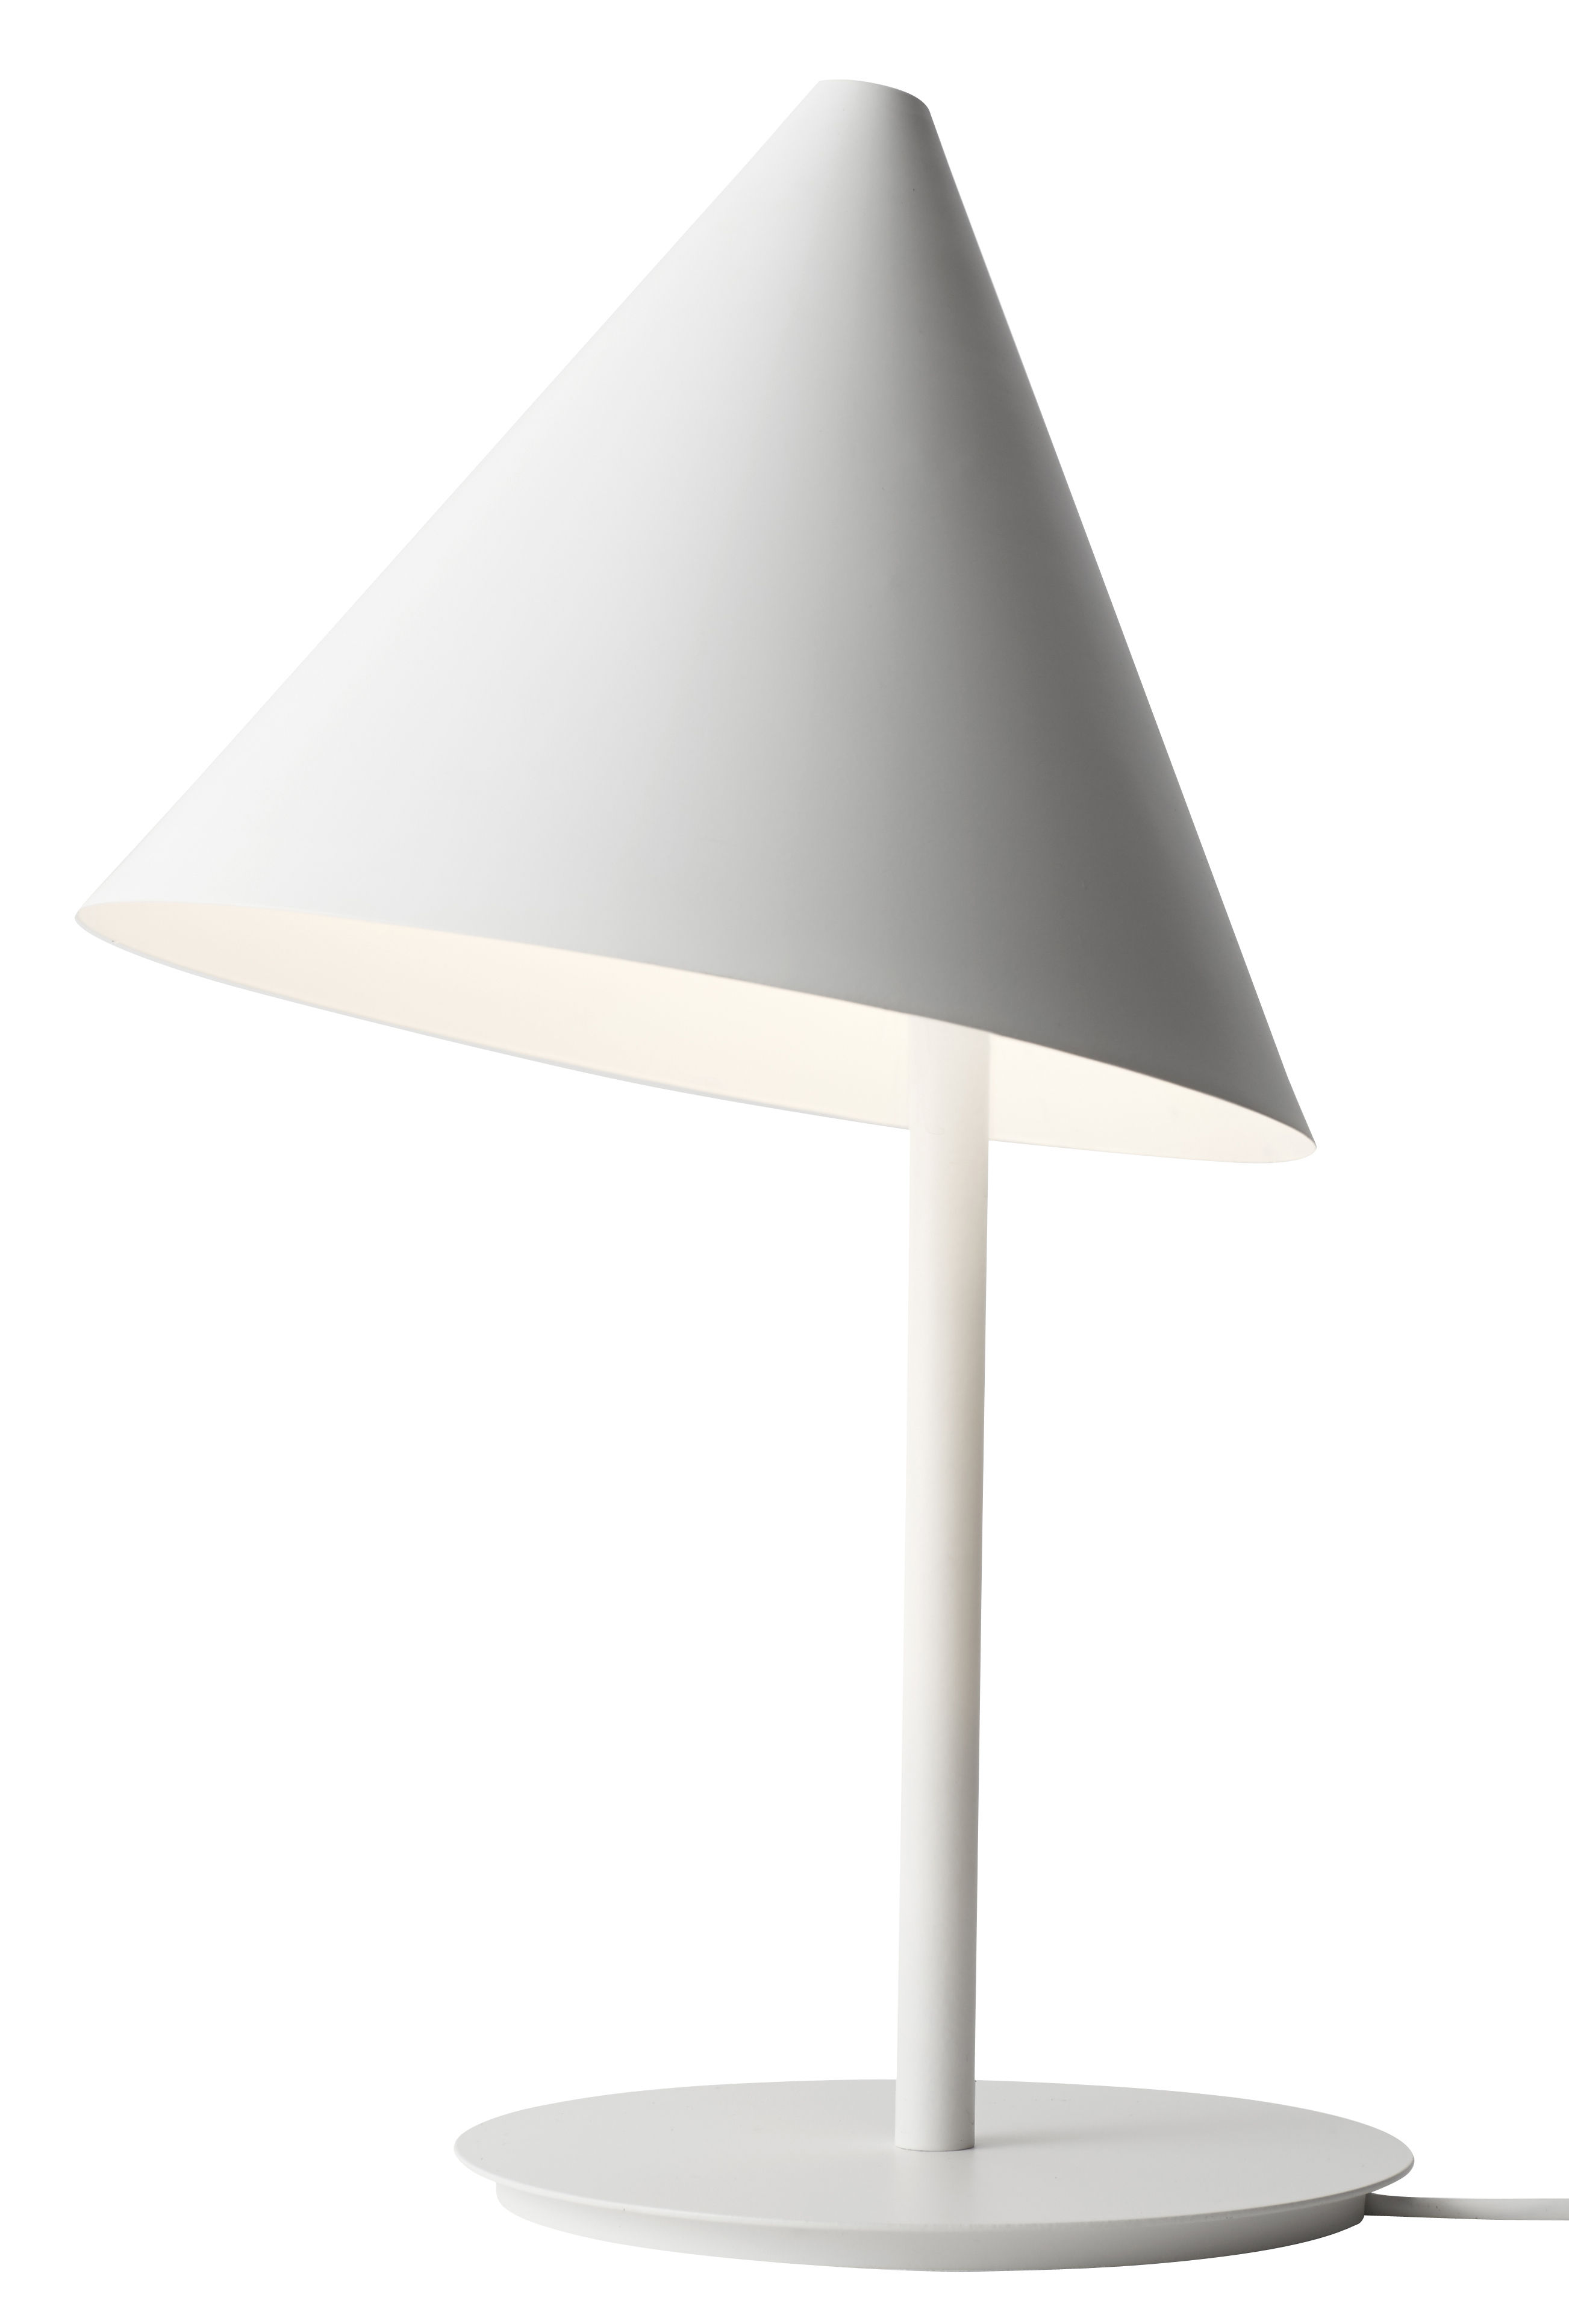 Lighting - Table Lamps - Conic Table lamp - H 50 cm by Menu - White - Steel